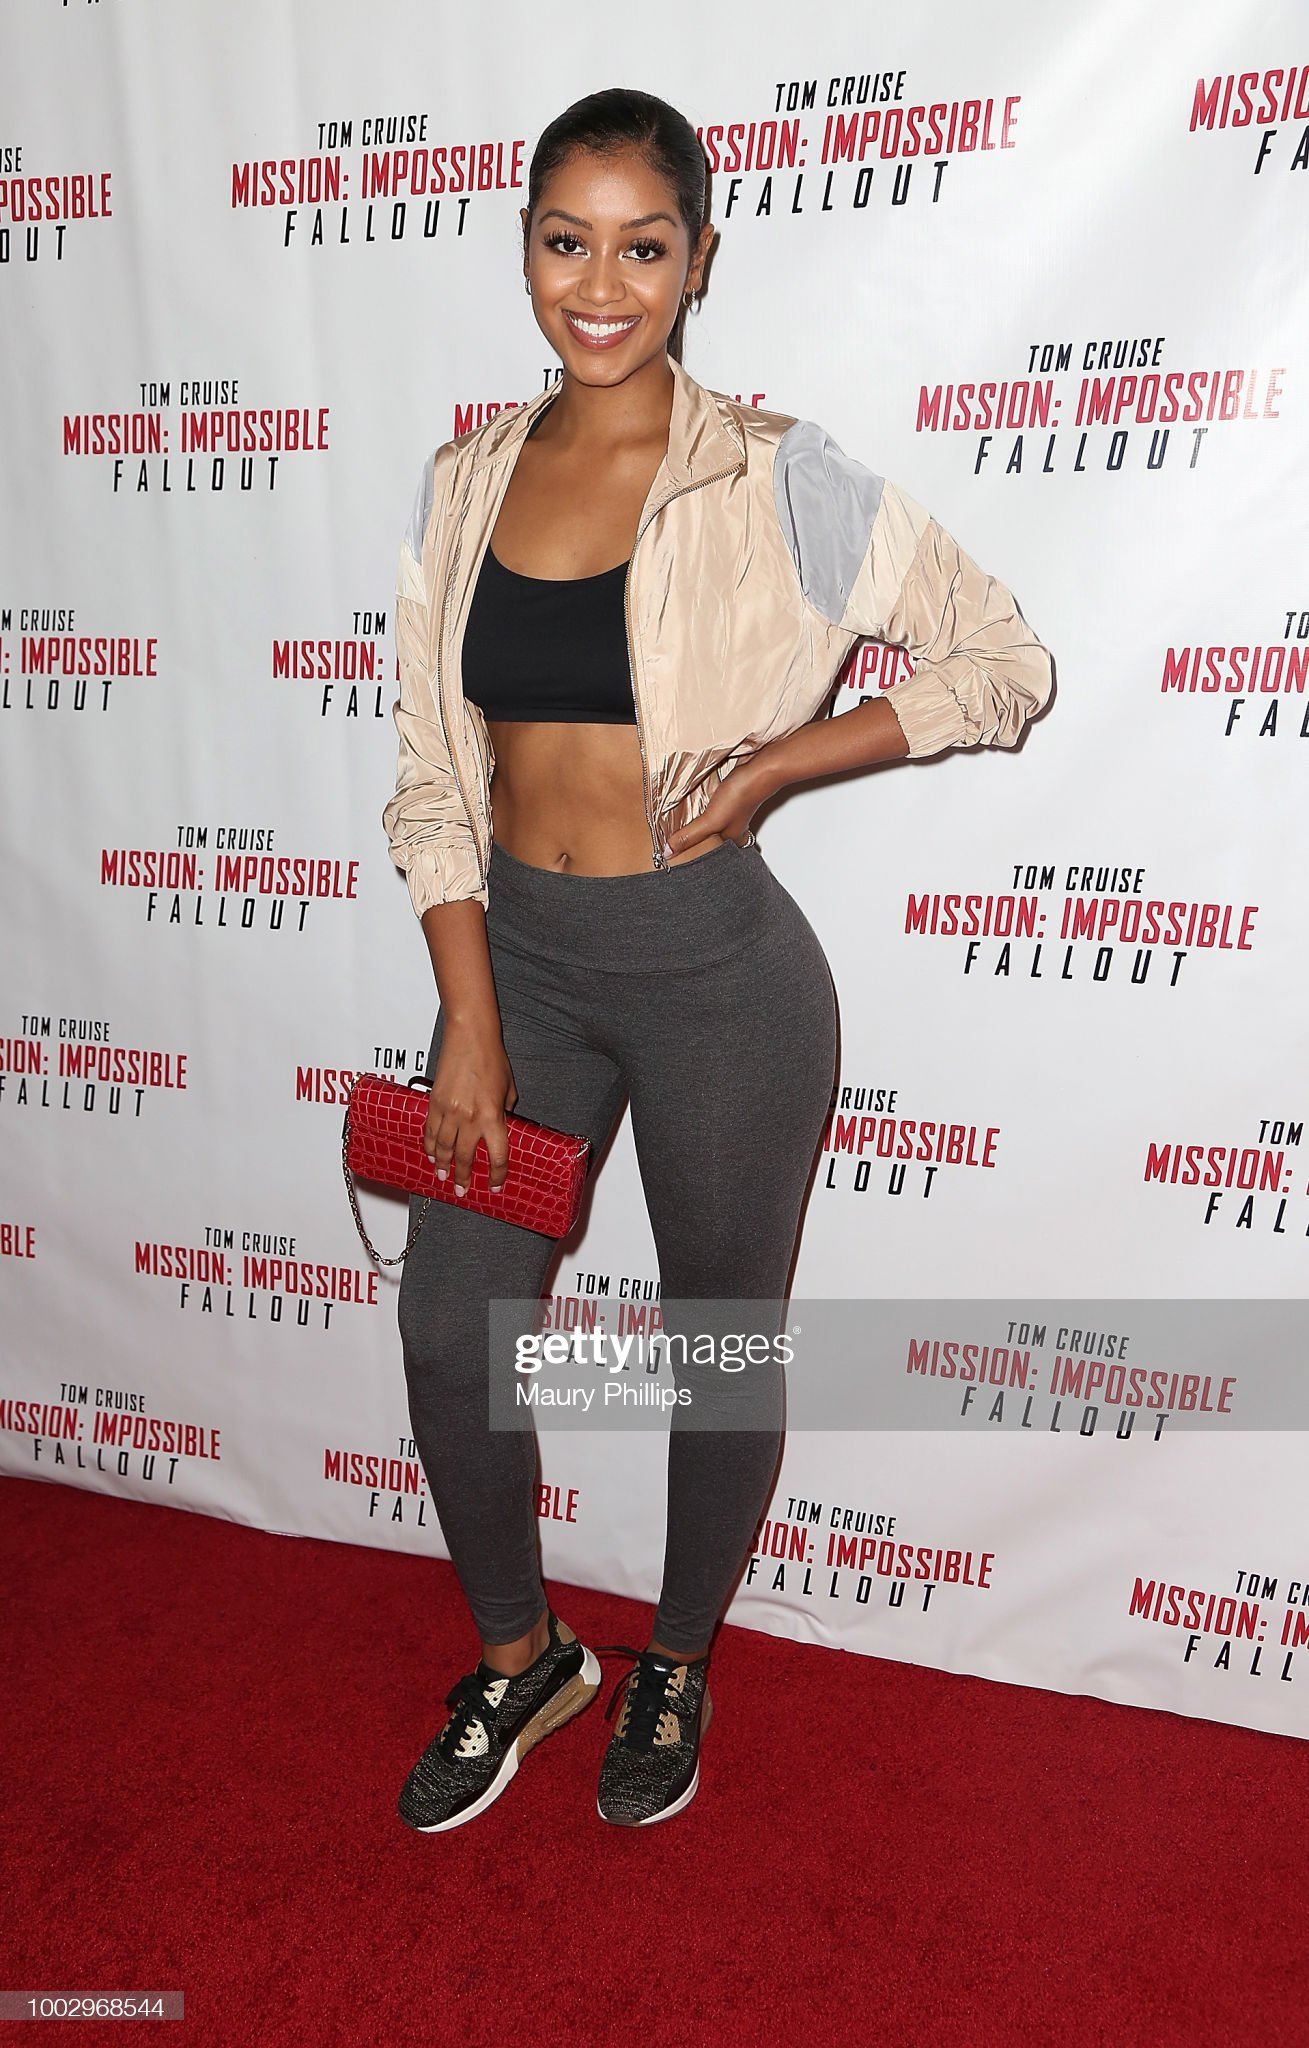 ¿Cuánto mide Tyler Abron? - Real height Tyler-abron-attends-mission-impossible-fallout-screening-on-july-20-picture-id1002968544?s=2048x2048